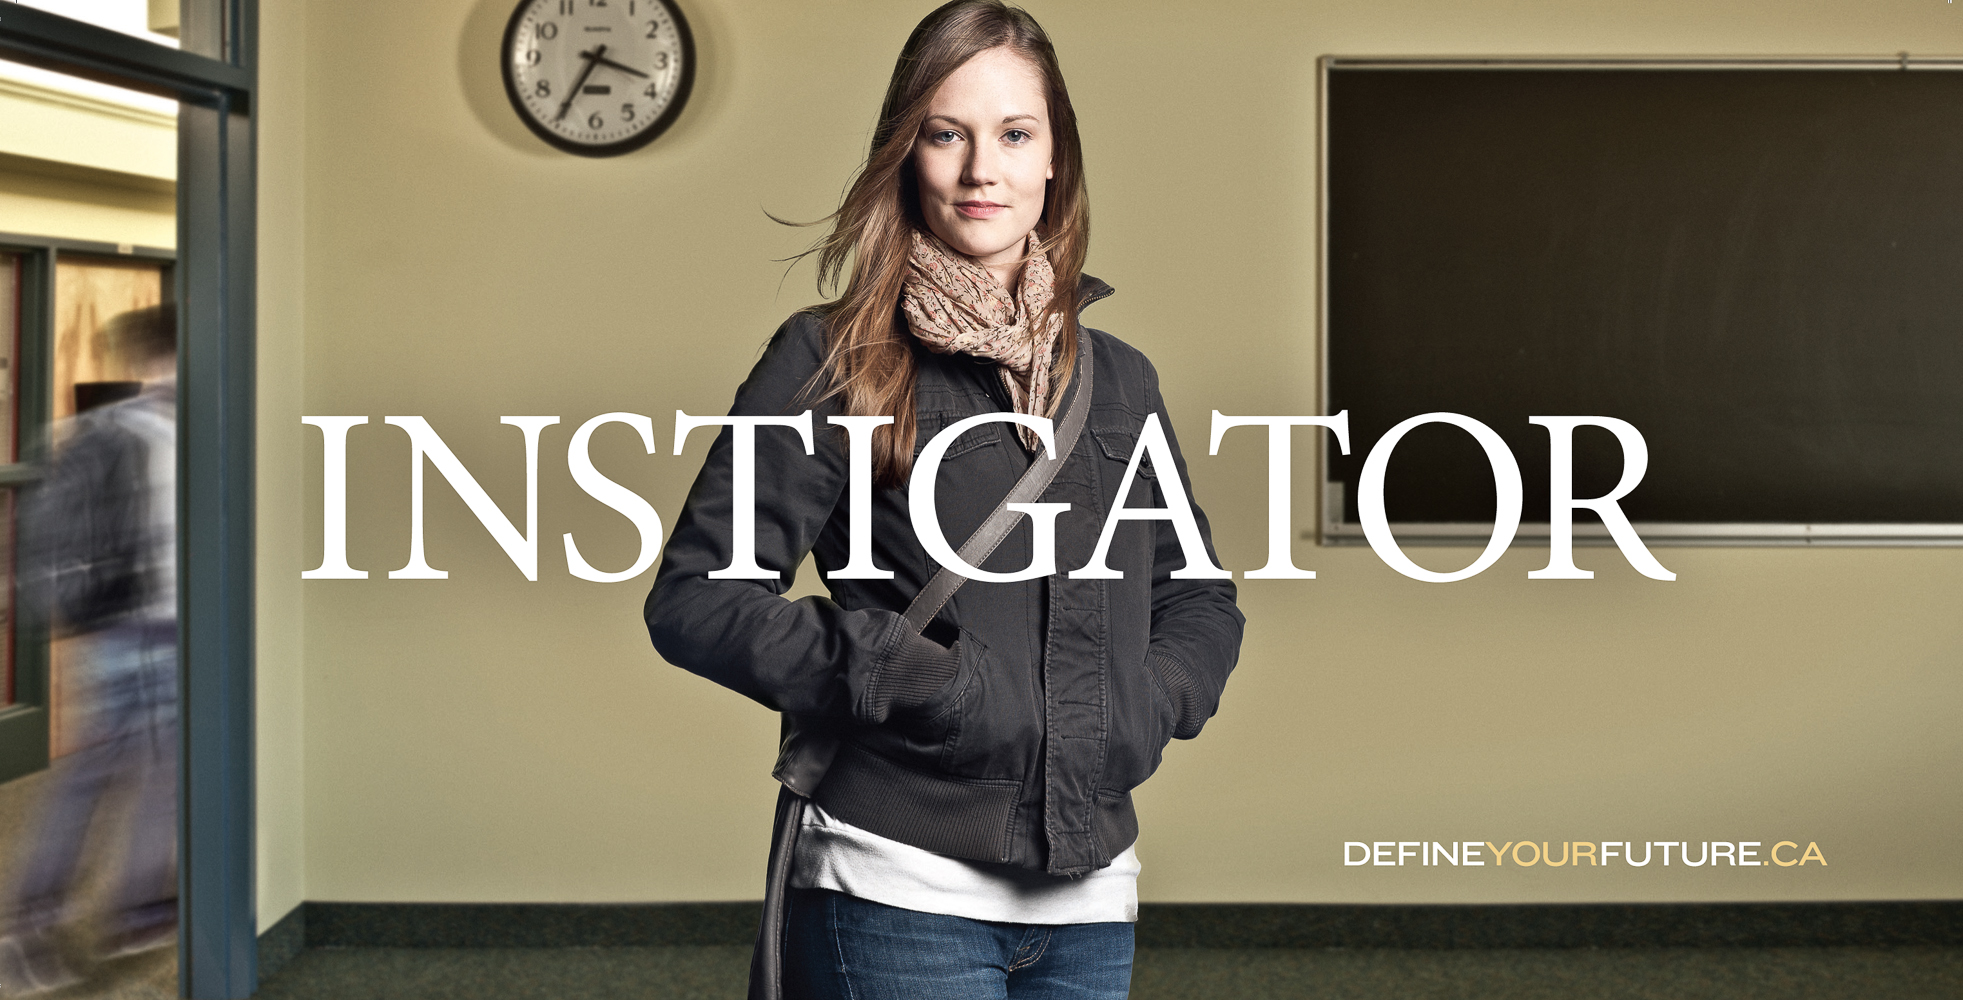 University ad by Winnipeg commercial photographer 5